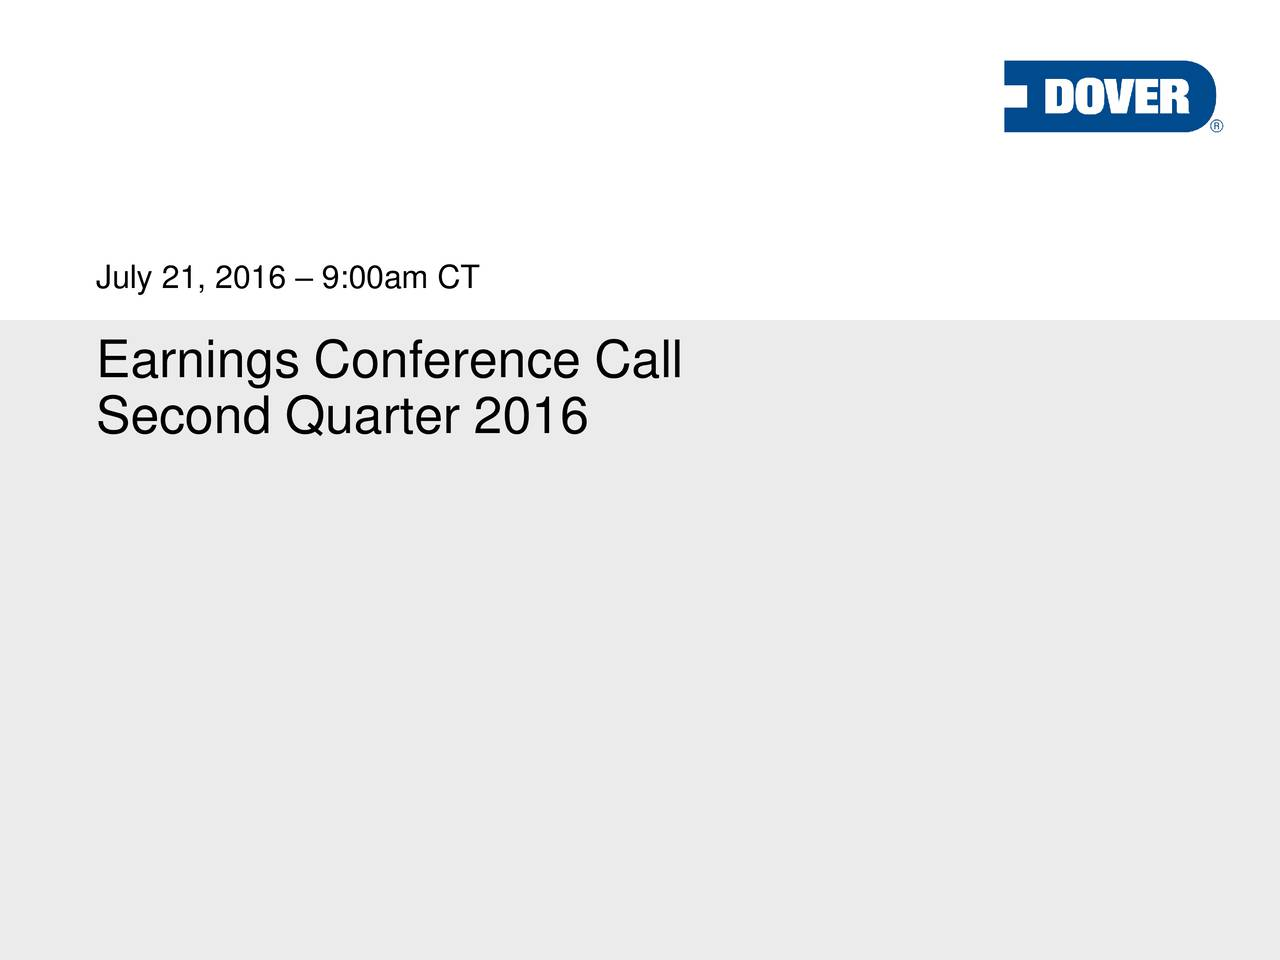 Earnings Conference Call Second Quarter 2016